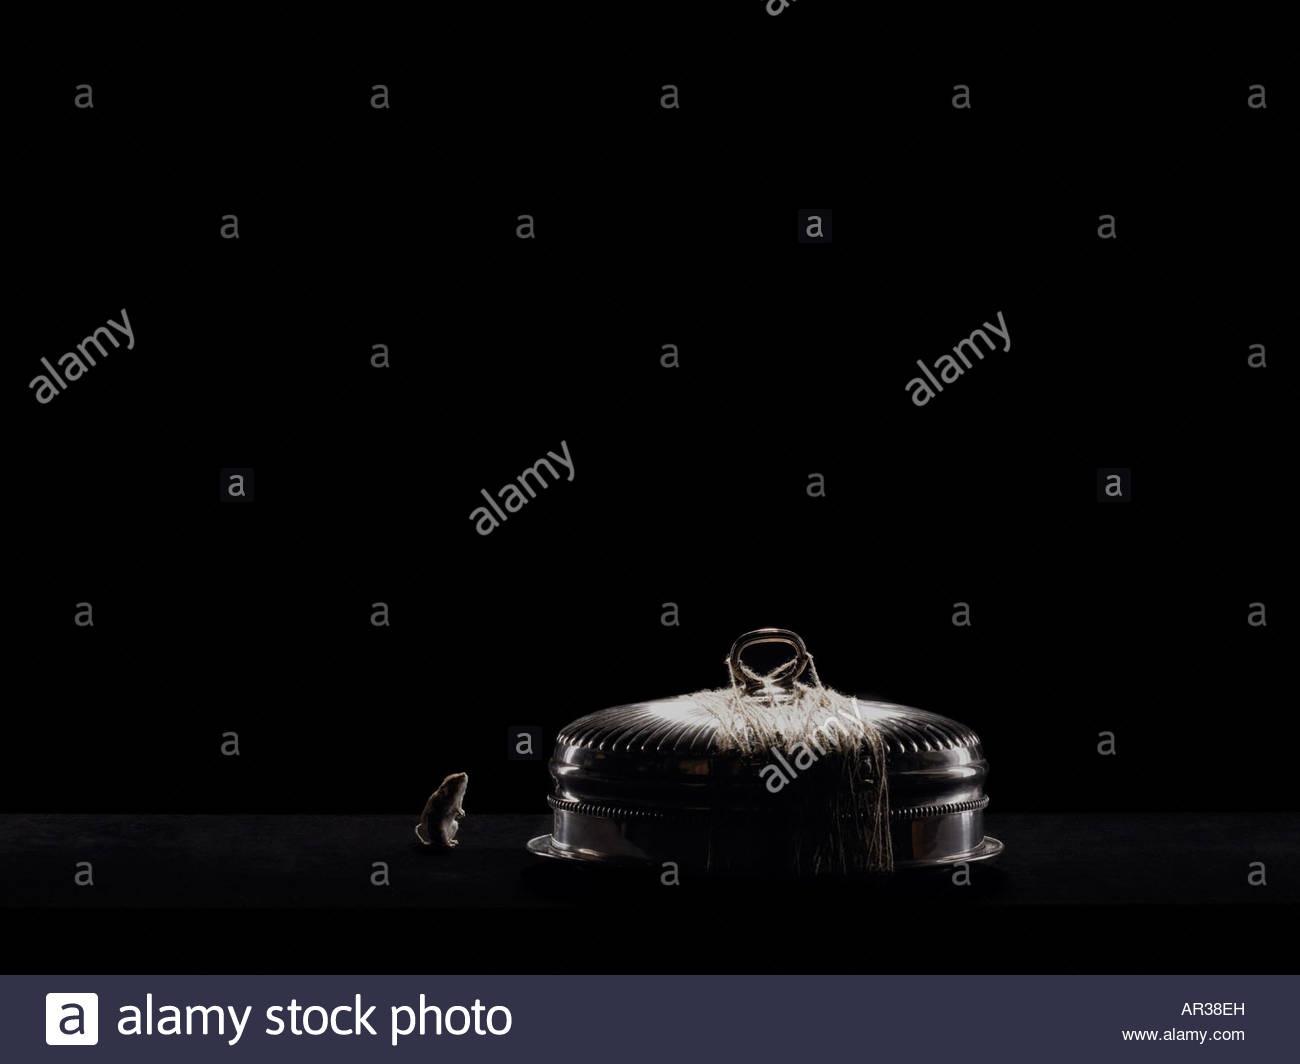 Mouse and a silver platter - Stock Image